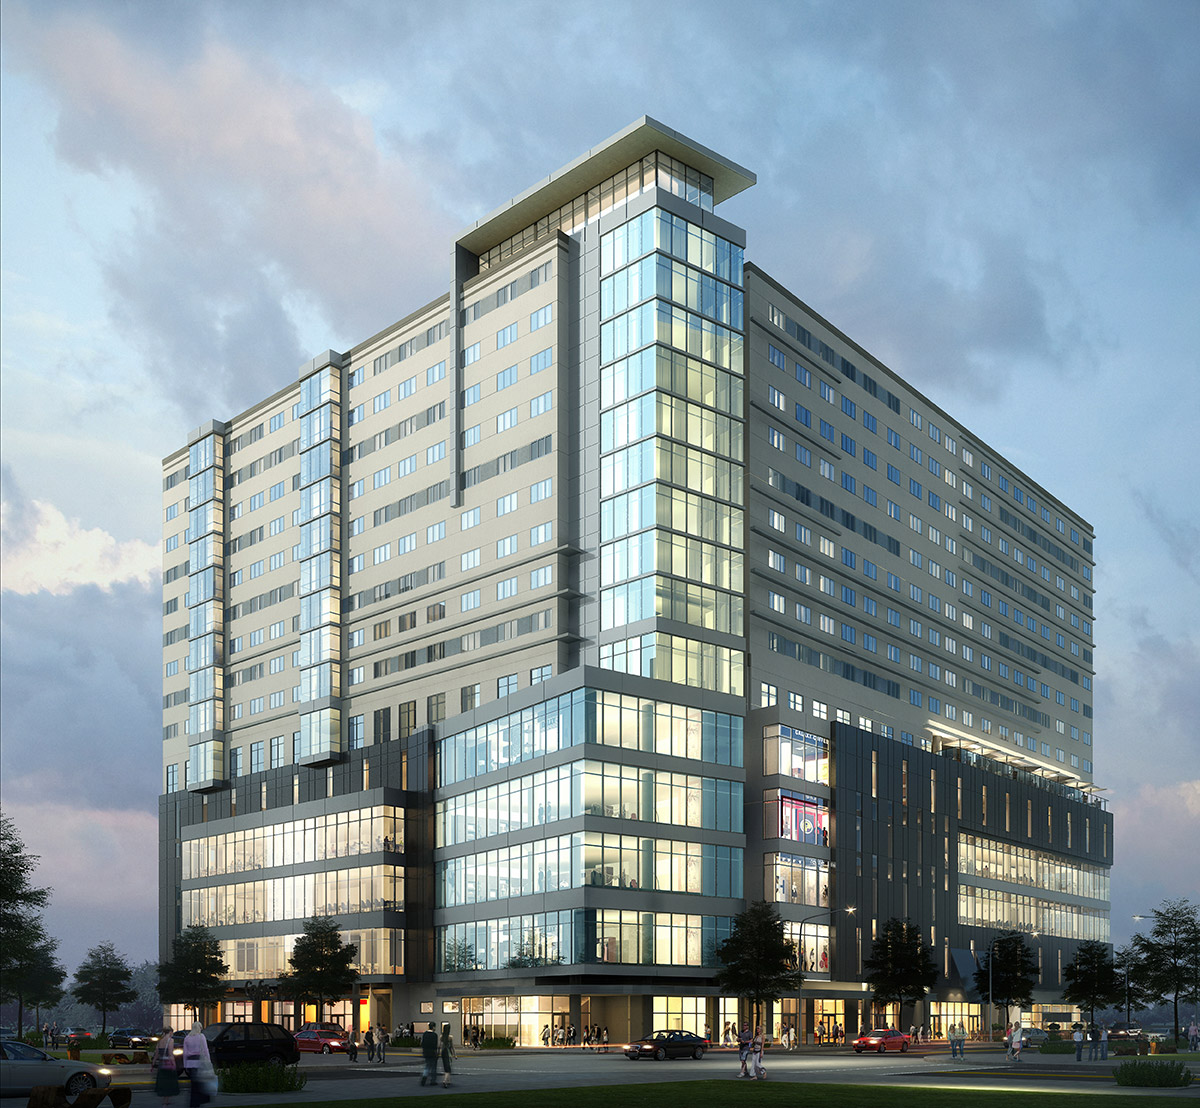 rendering of glass square building lit up at dusk